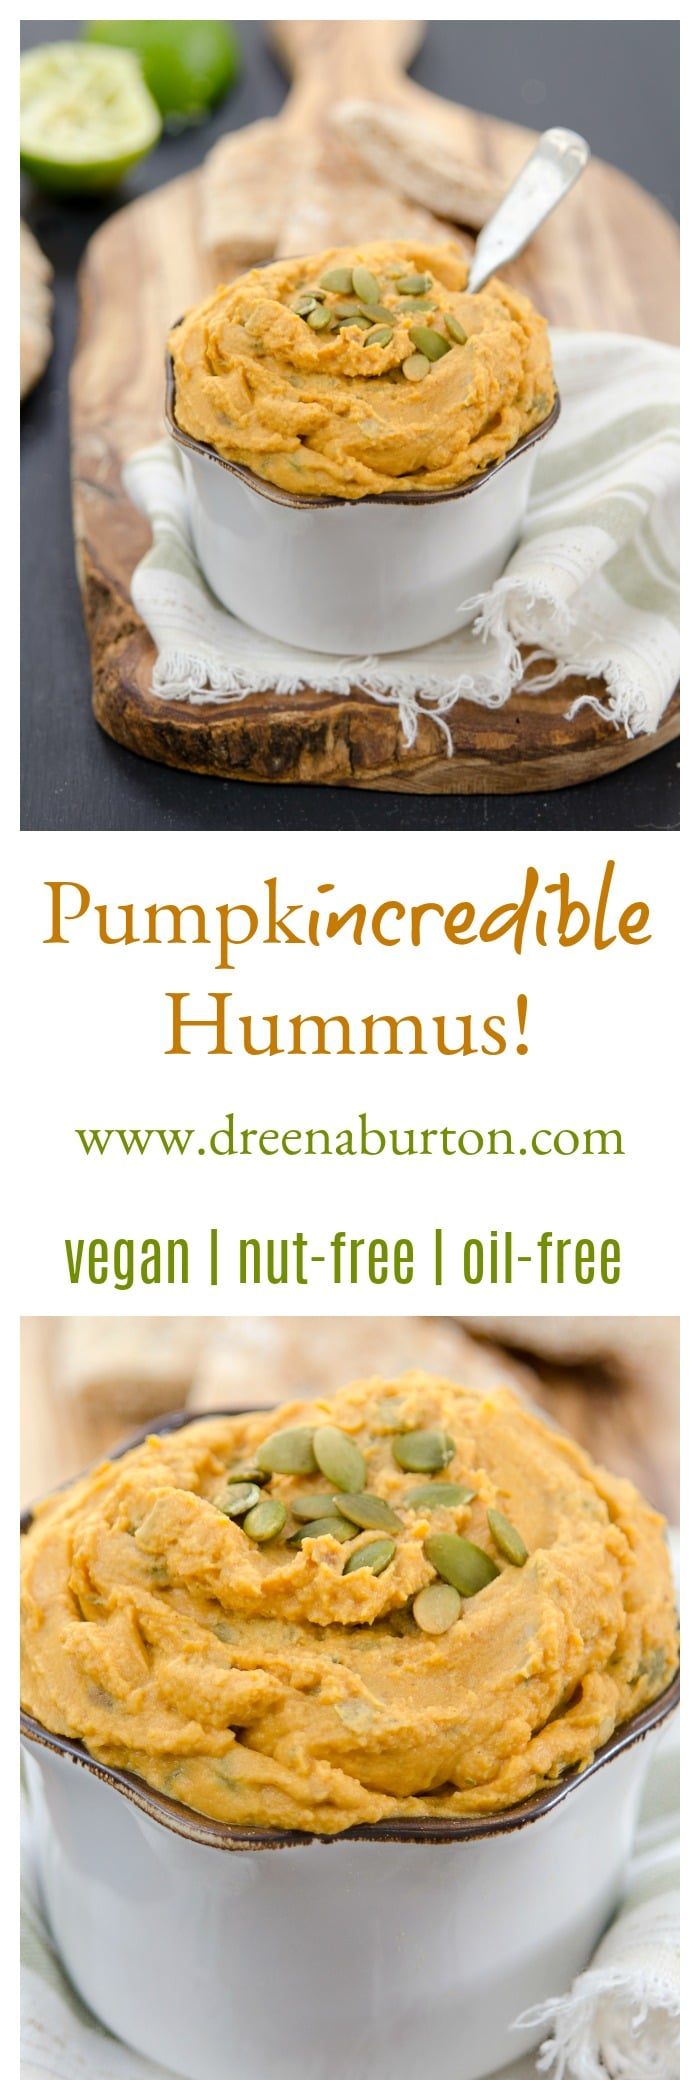 PumpkINCREDIBLE Hummus!